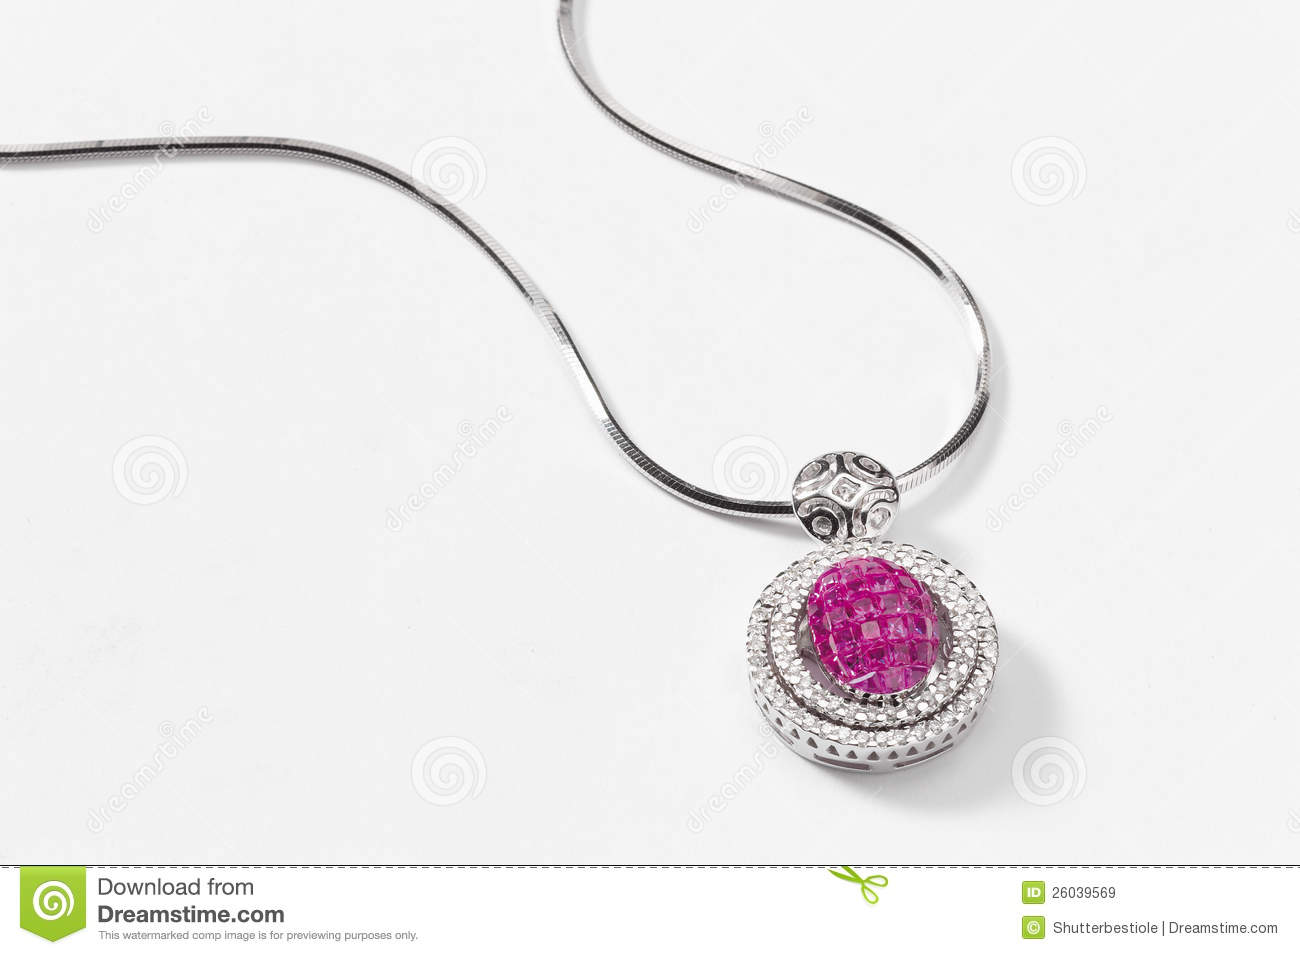 m ed diamonds and platinum sapphire sapphires small diamond necklaces co in heart tiffany pink with jewelry pendants pendant necklace